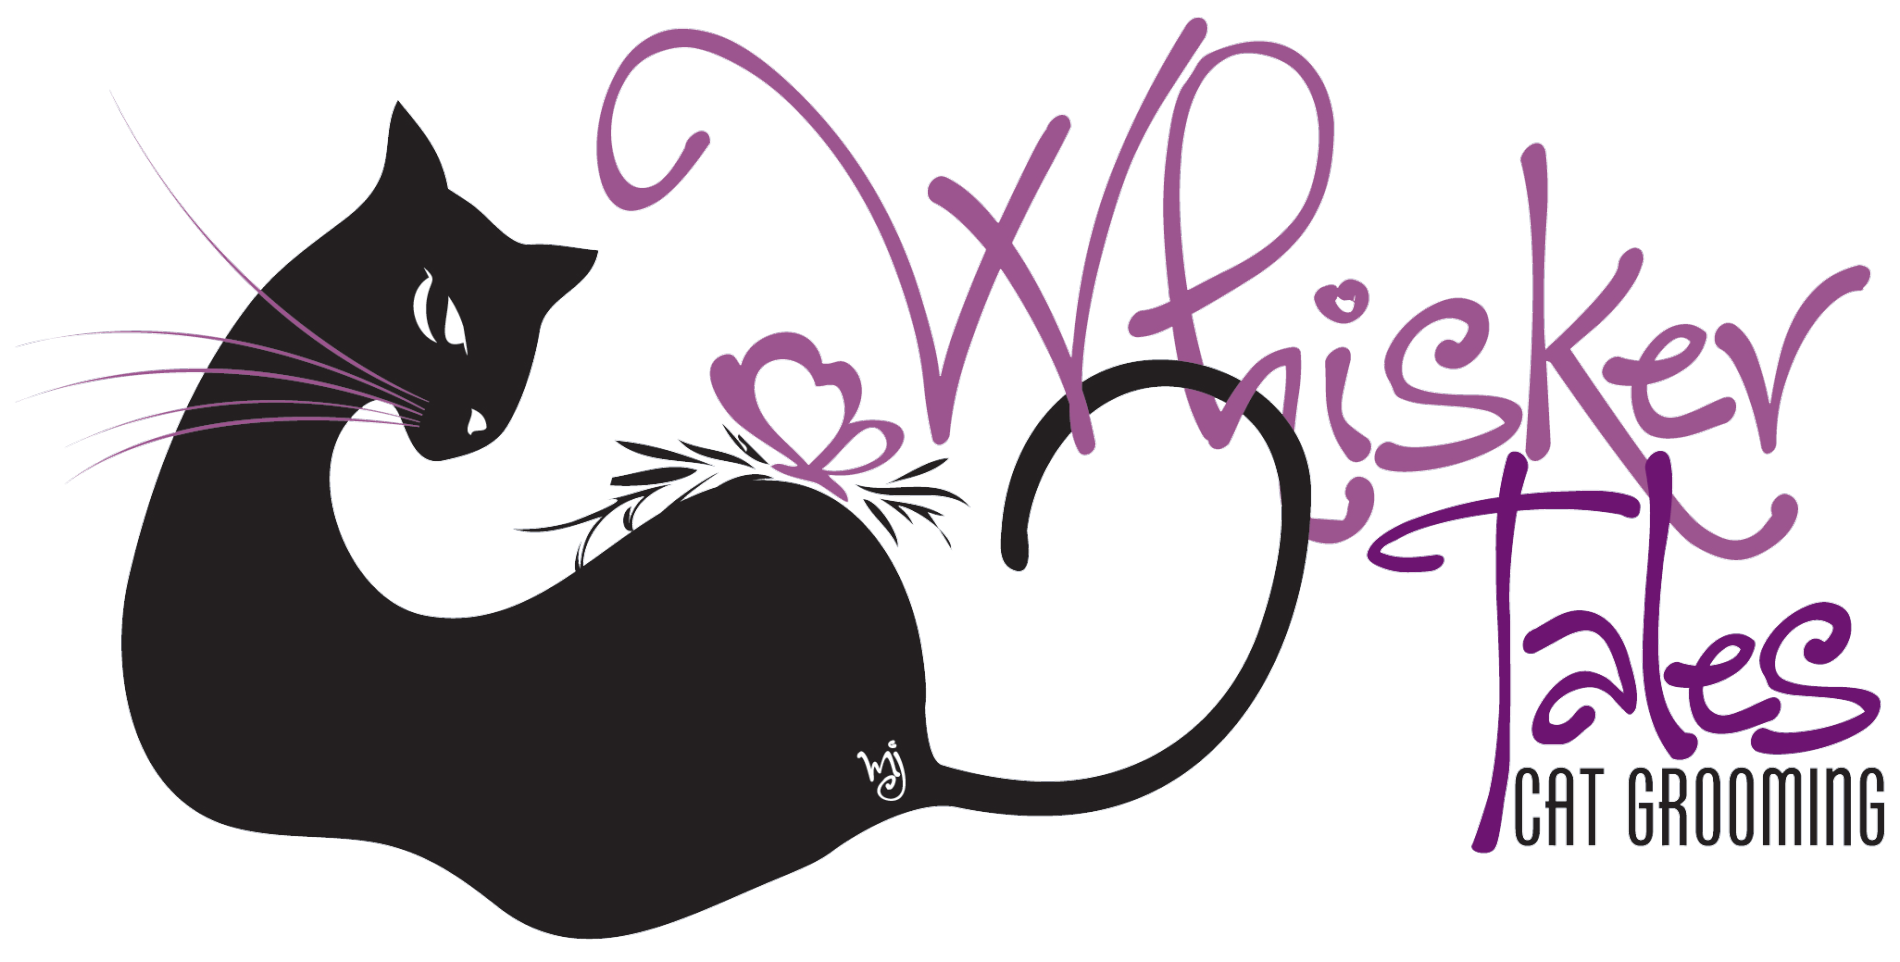 Cat on welcome mat clipart jpg transparent download Exclusive Cat Grooming by Whisker Tales | Victoria, BC jpg transparent download